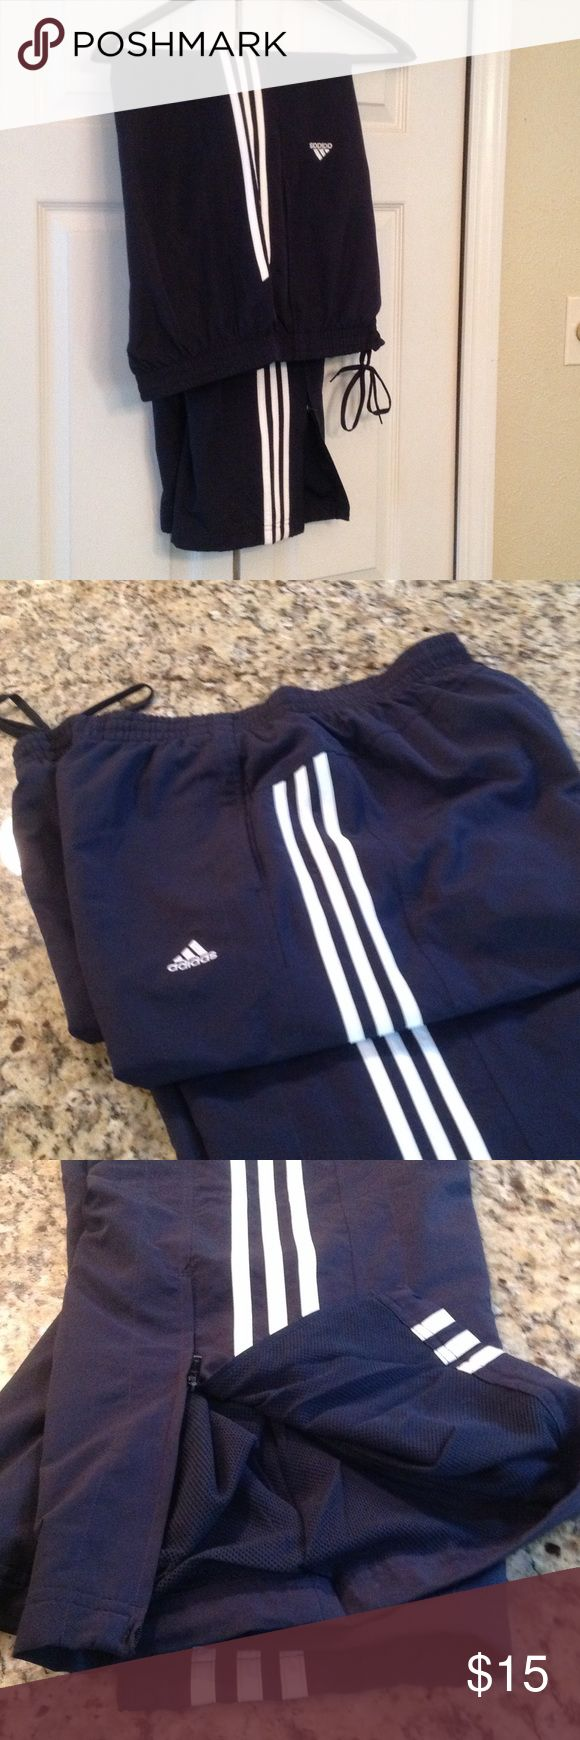 ADIDAS men's athletic pants Navy blue, draw string, ankle zipper and side pocket with mesh lining. adidas Pants Sweatpants & Joggers